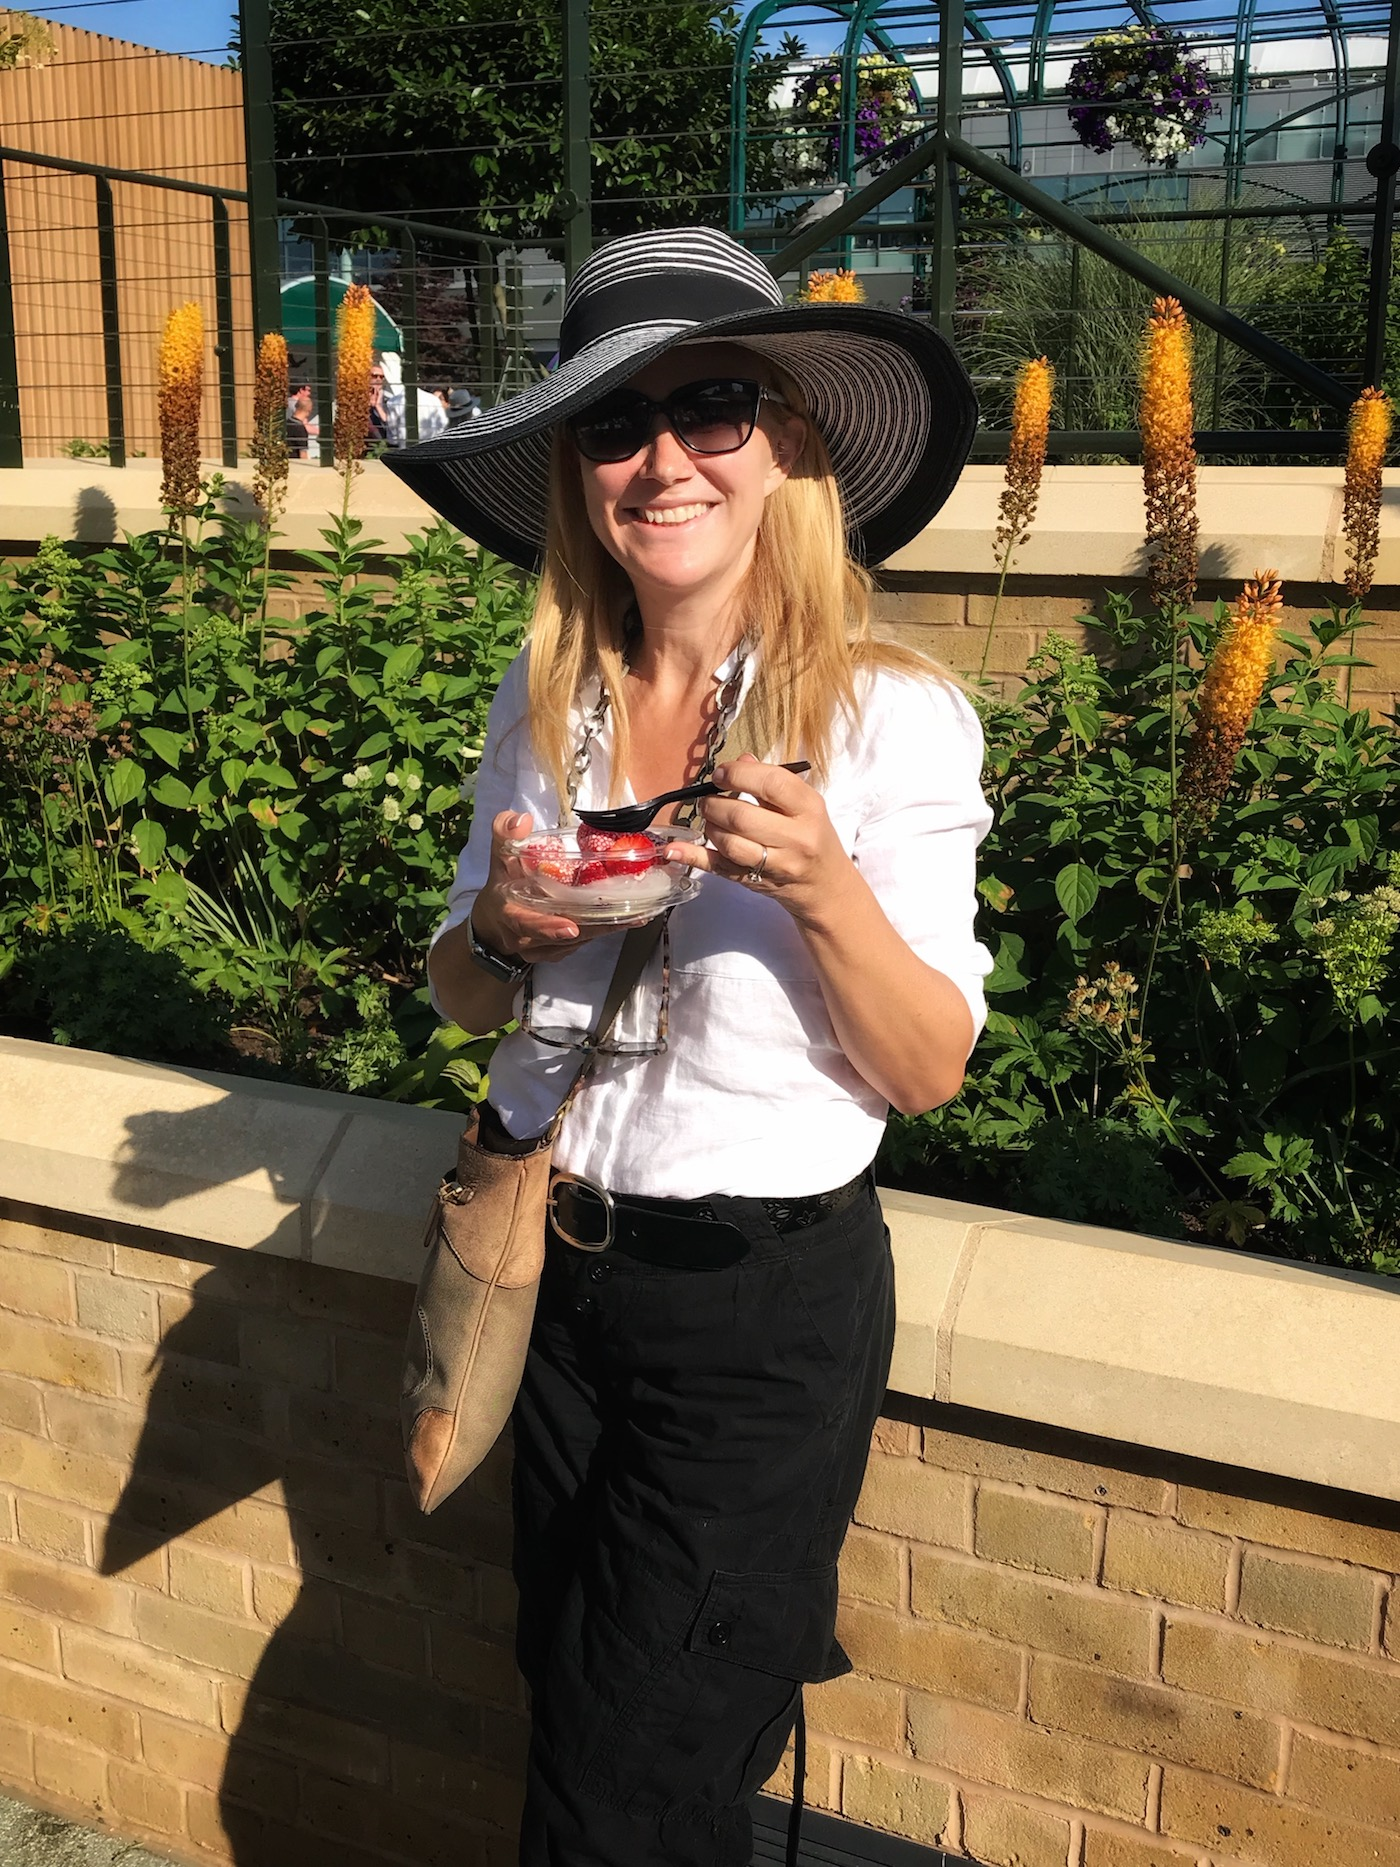 Abroad In London Eating Strawberrries and Cream at Wimbledon.jpg